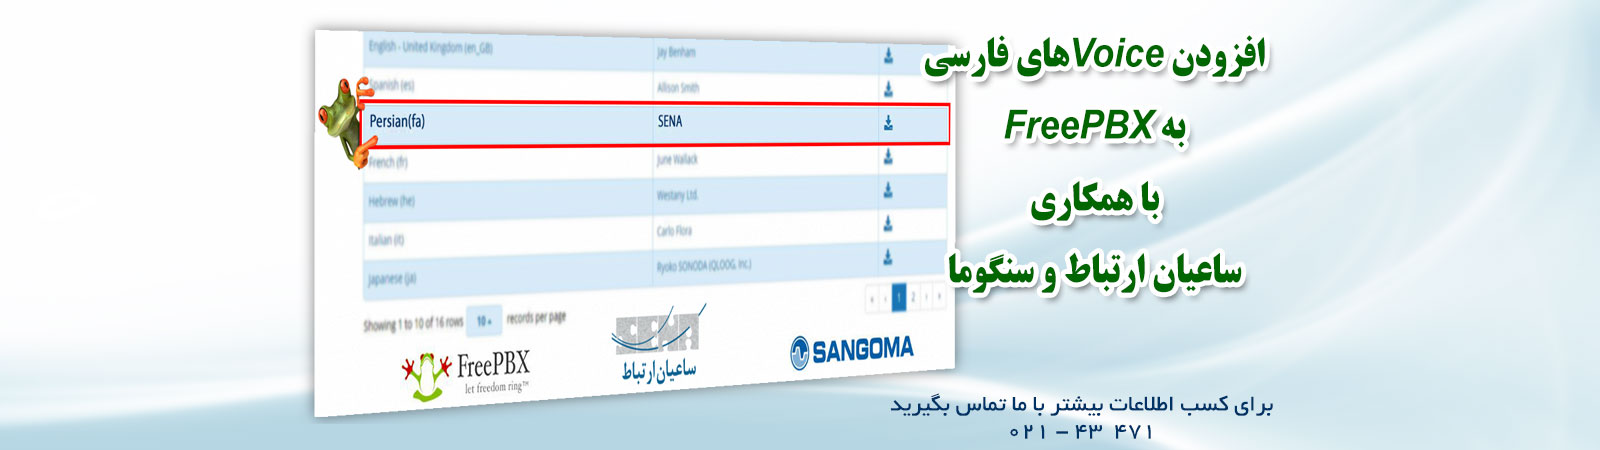 freepbx - sena - persian - voice